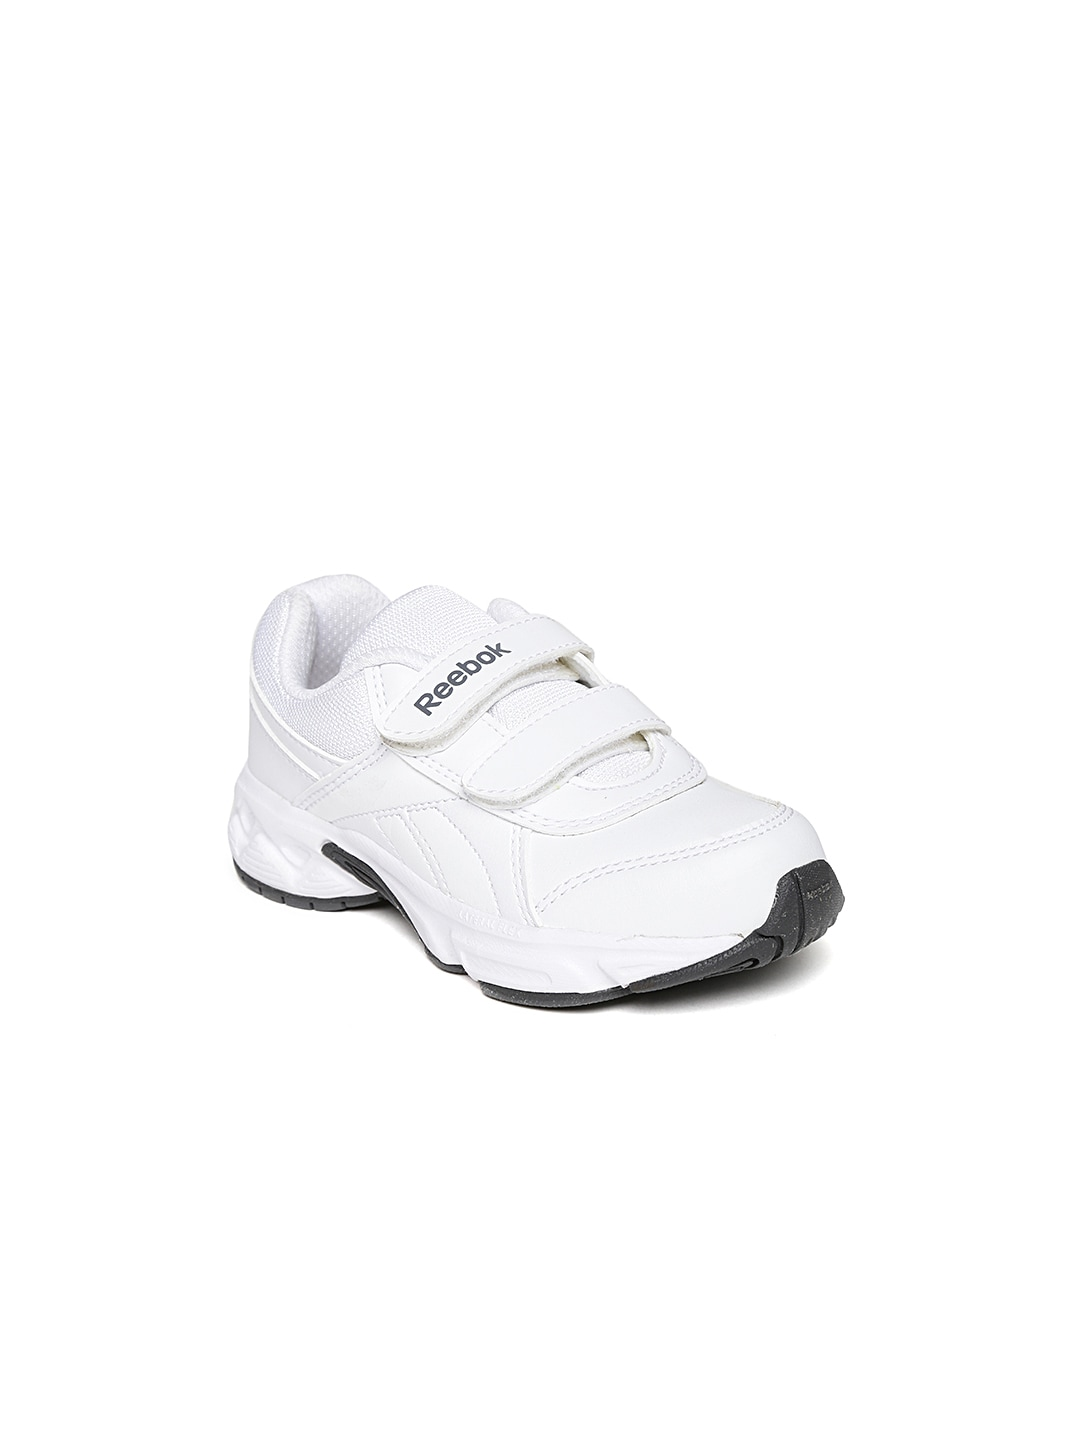 Reebok White School Shoes - Buy Reebok White School Shoes online in India 95efa7dbc